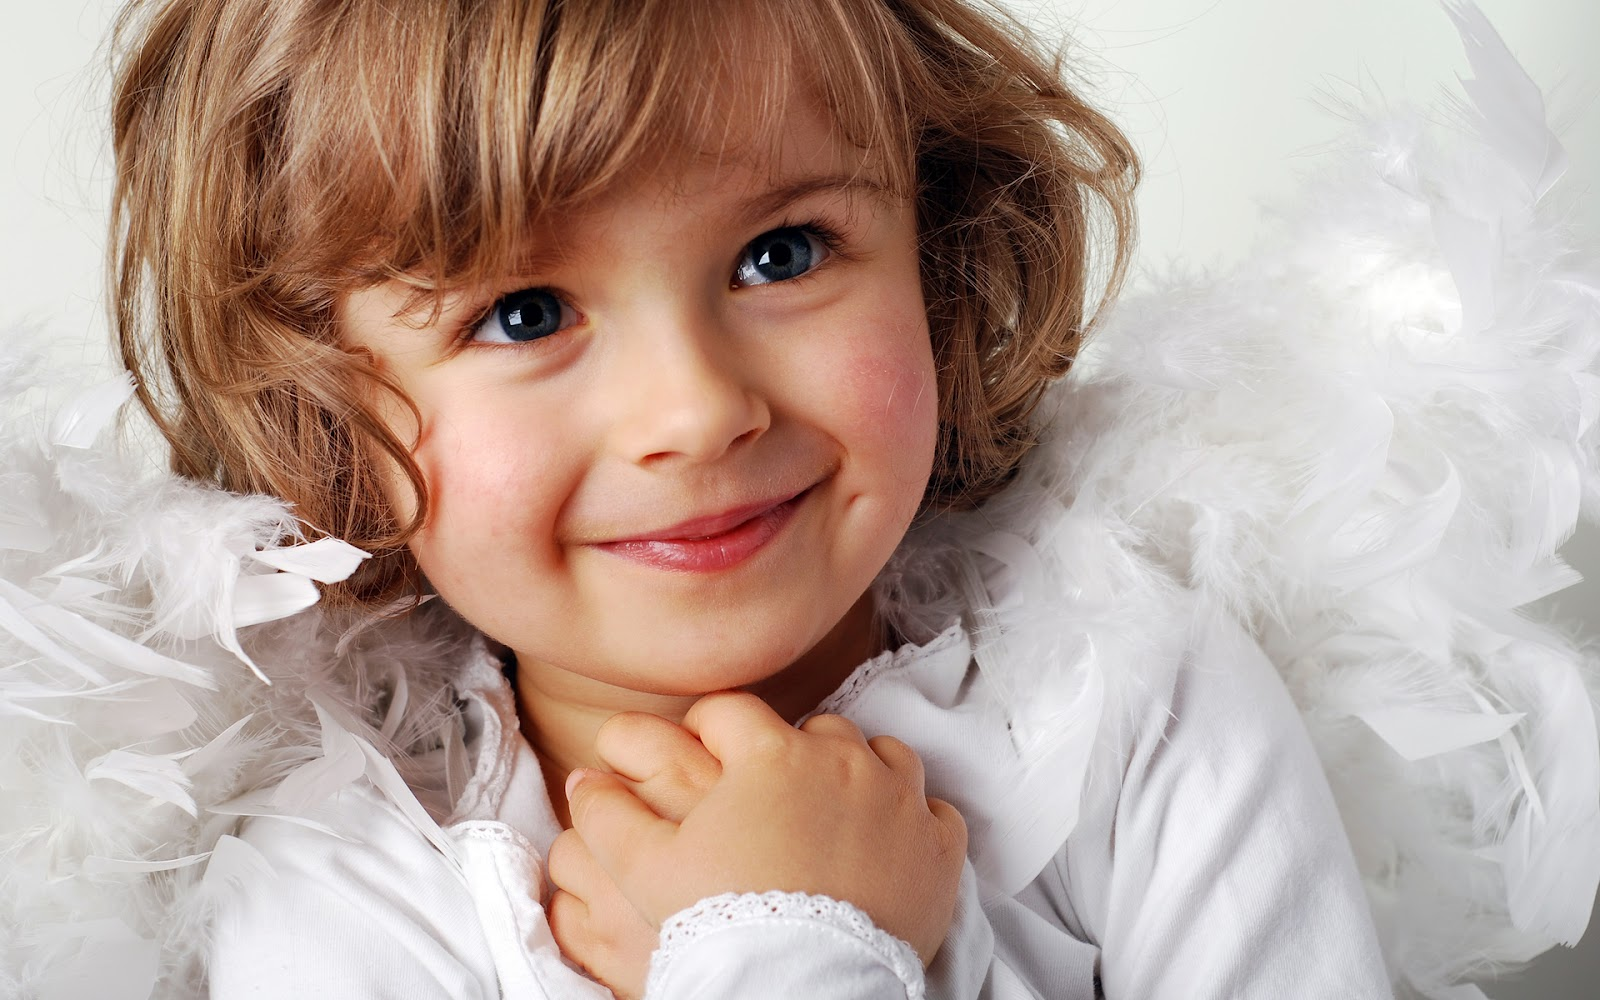 beautiful kids picture gallery | cute babies pics wallpapers